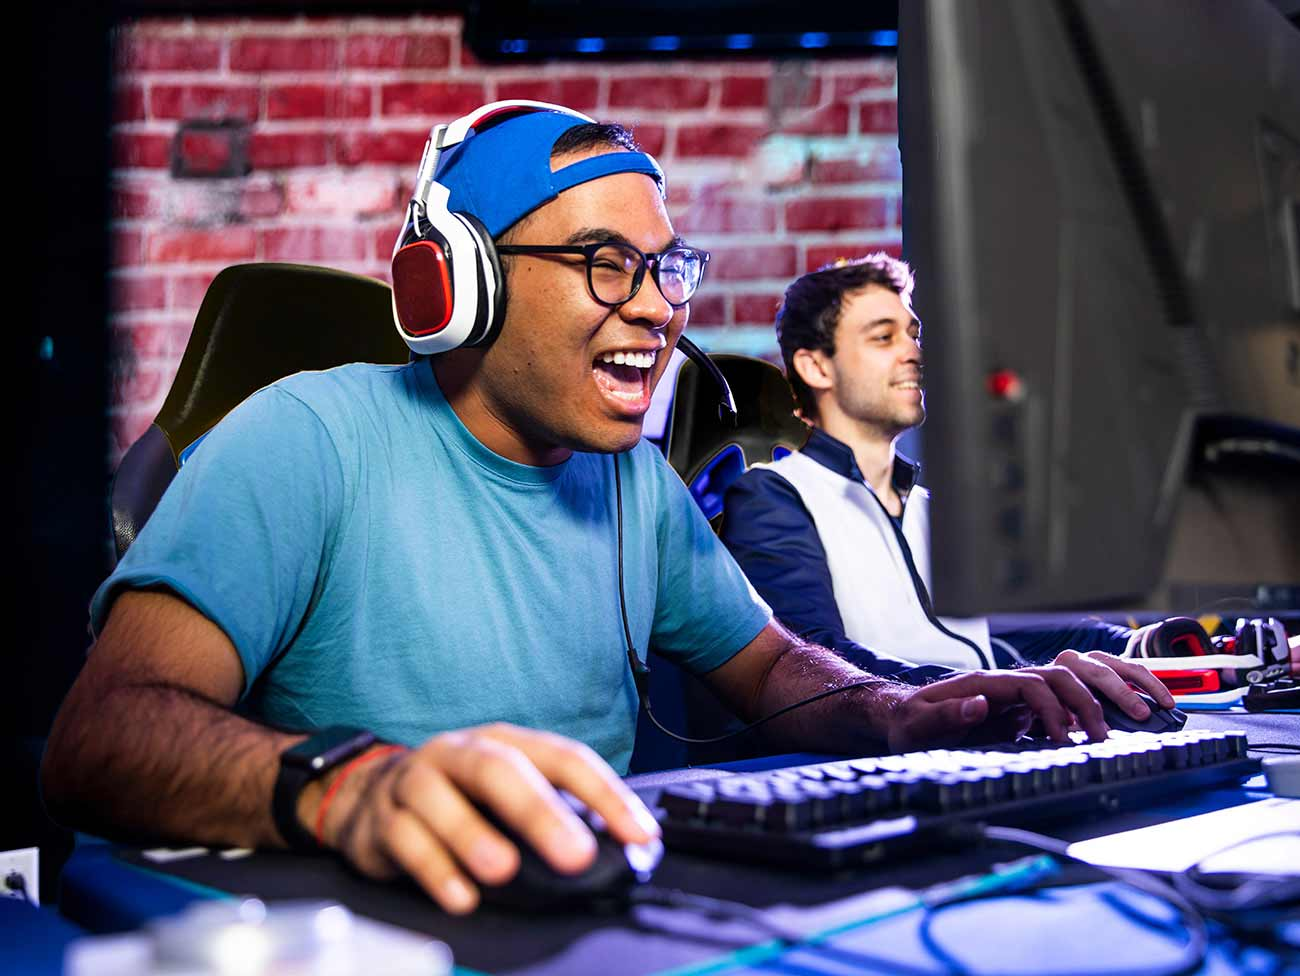 Young man reacts enthusiastically as he plays a video game at a desktop computer